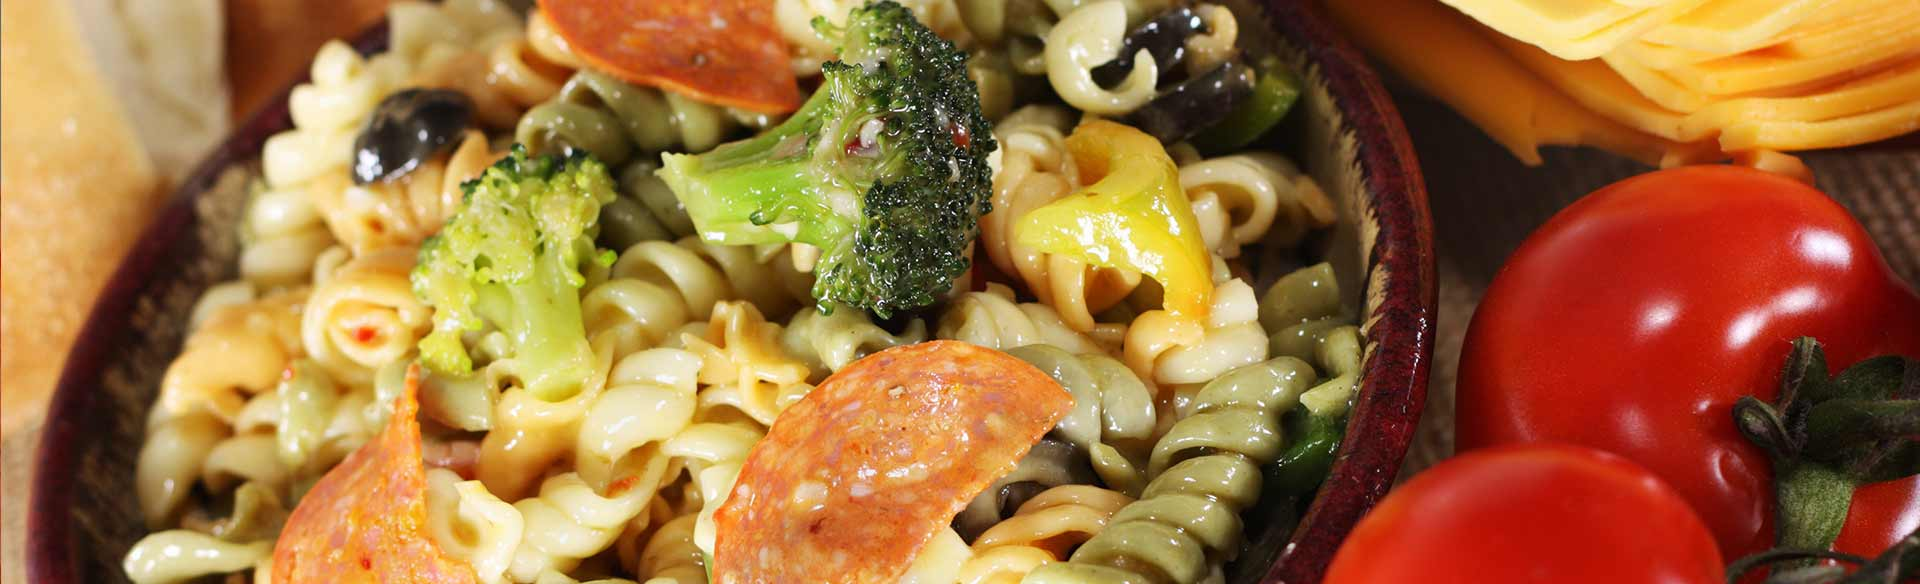 tri-colored-rotini-pasta-salad